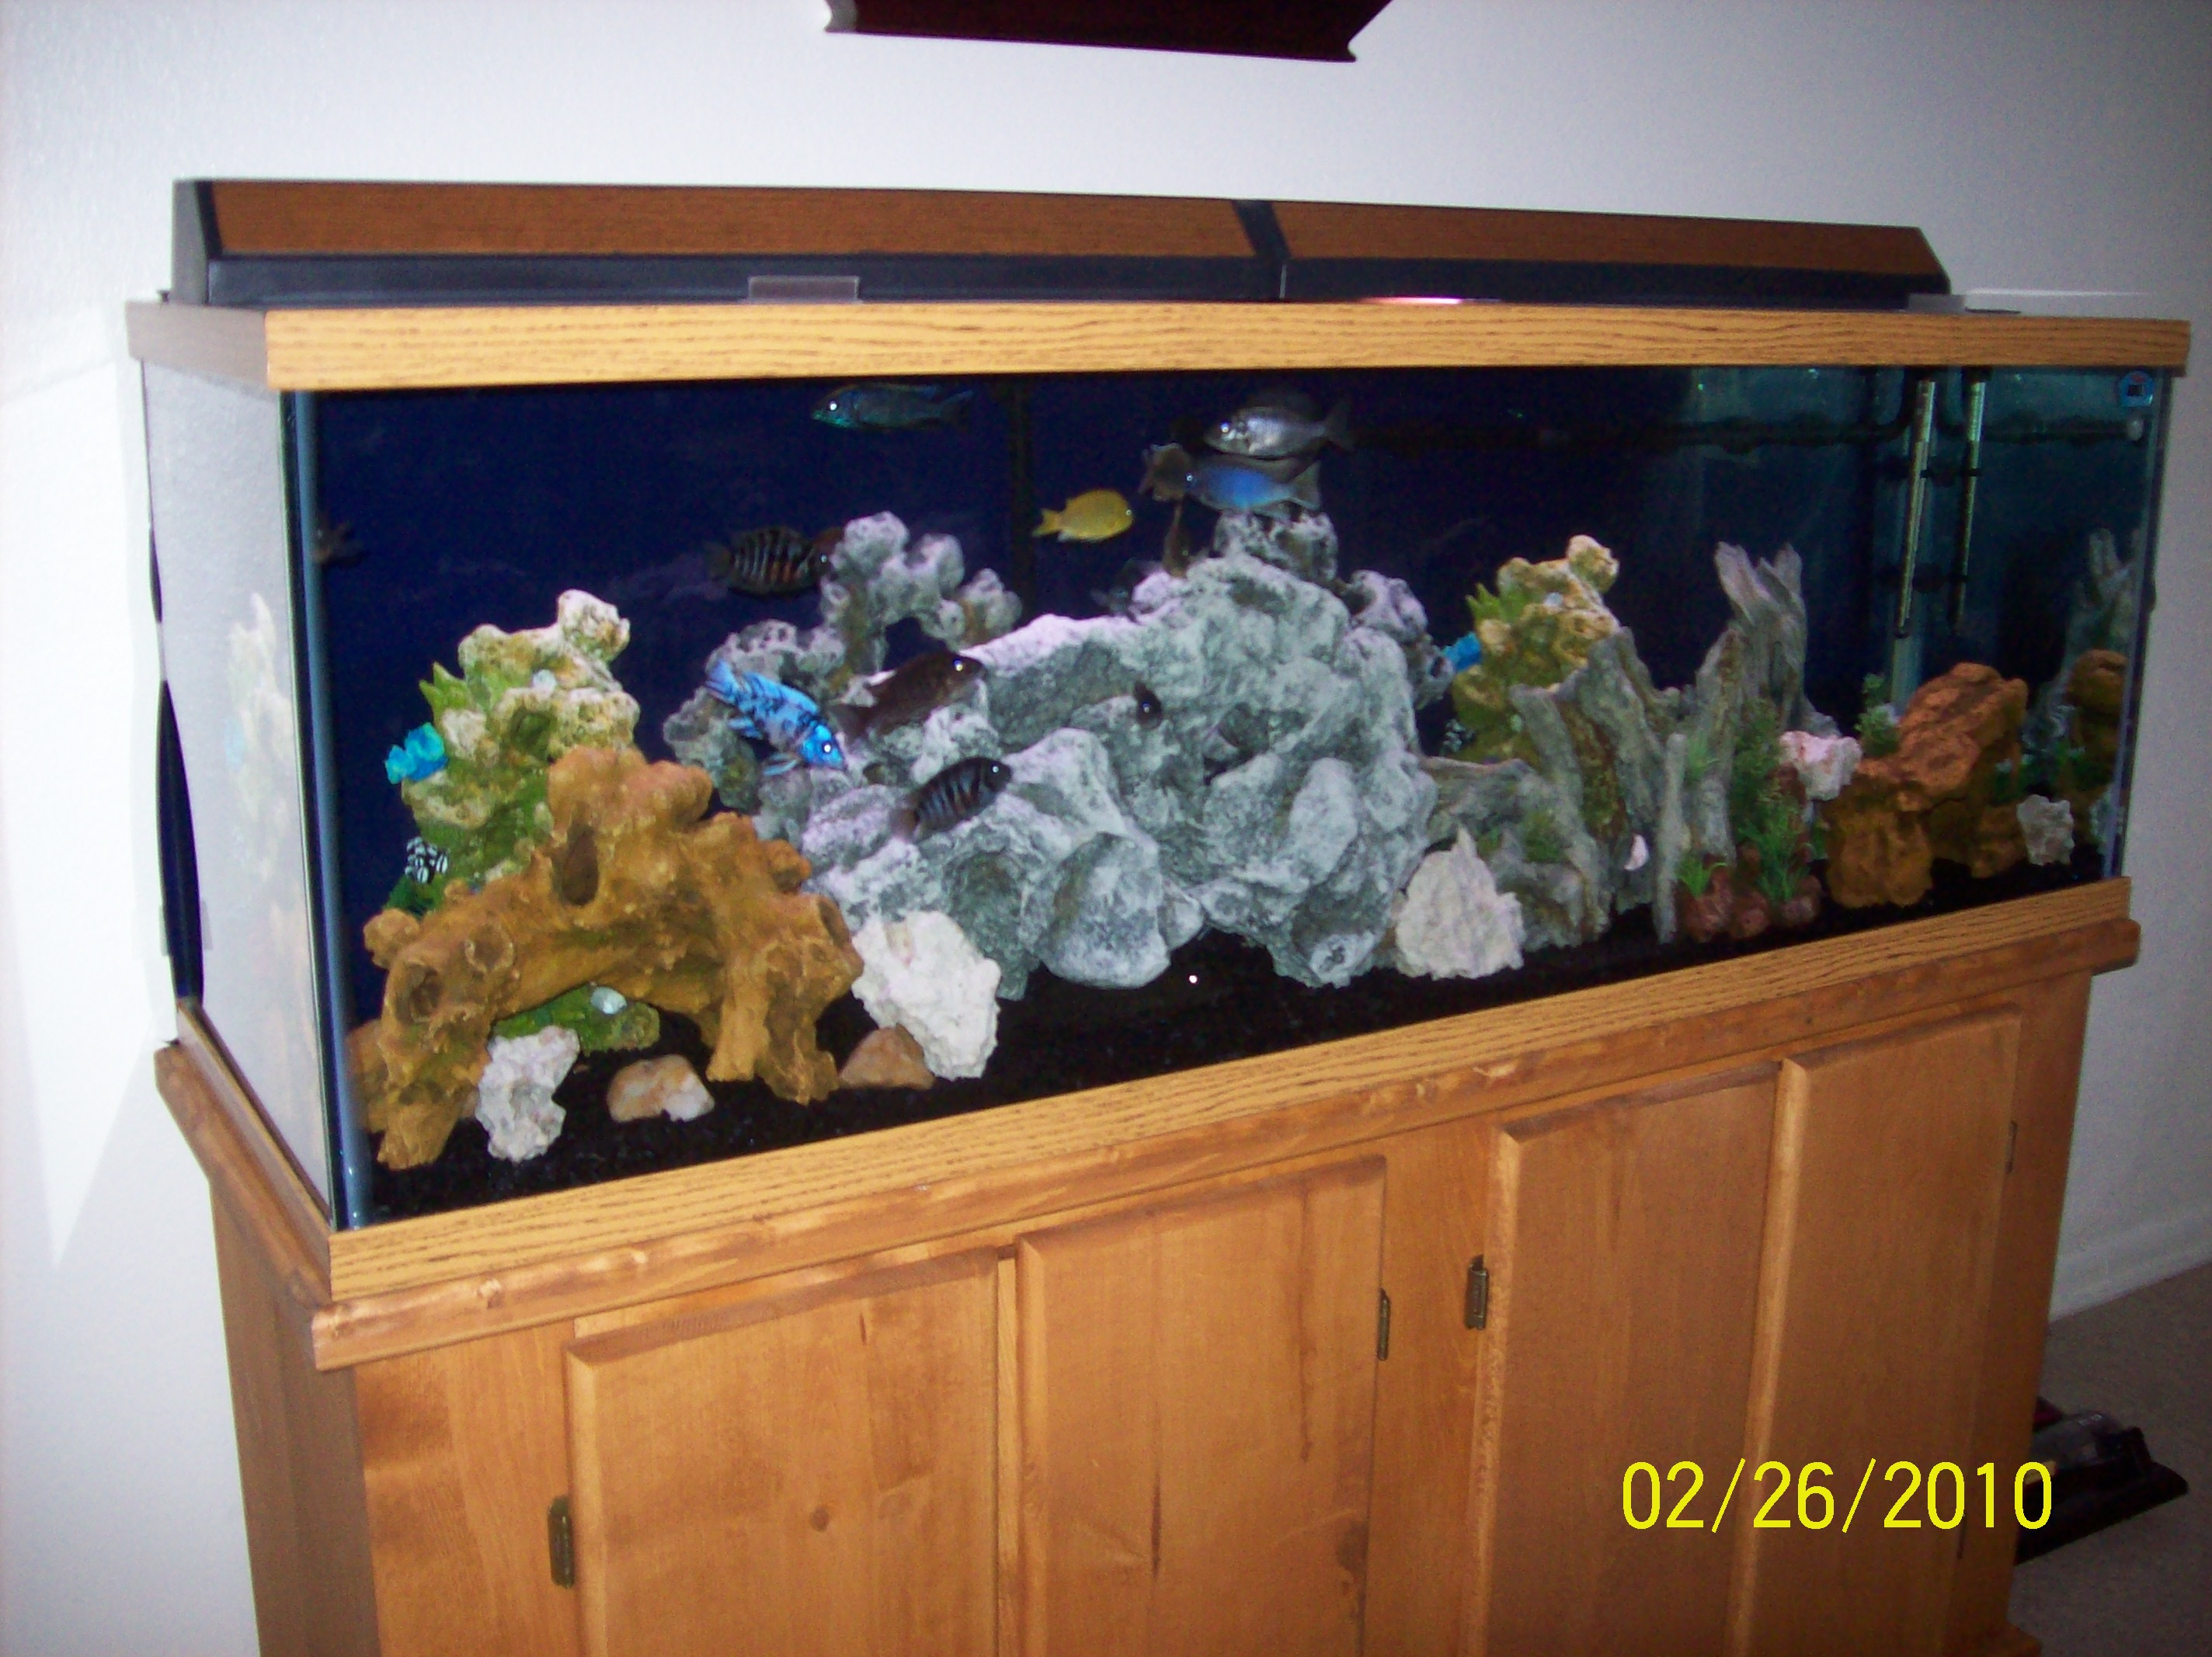 100 gallon aquarium gallery for 55 gallon fish tank for sale